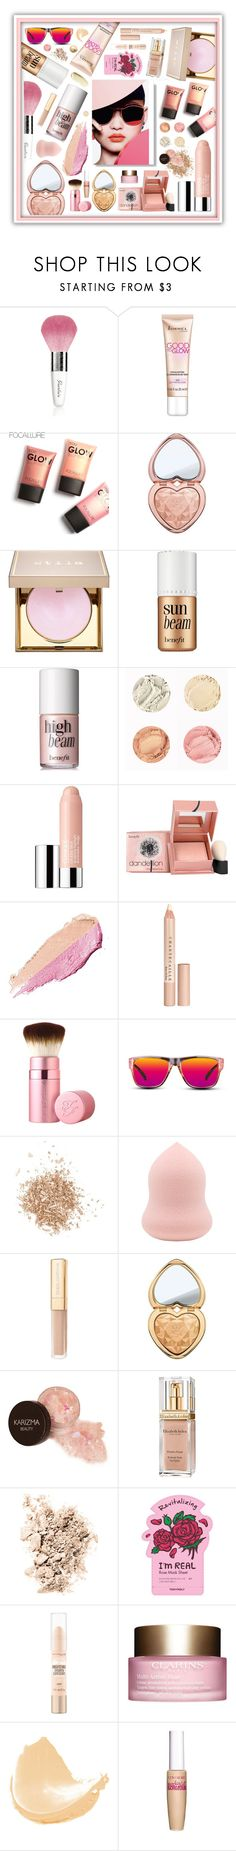 """Glowing blush"" by beanpod ❤ liked on Polyvore featuring Guerlain, Rimmel, Too Faced Cosmetics, Stila, Benefit, Clinique, By Terry, Chantecaille, GlassesUSA and Topshop"